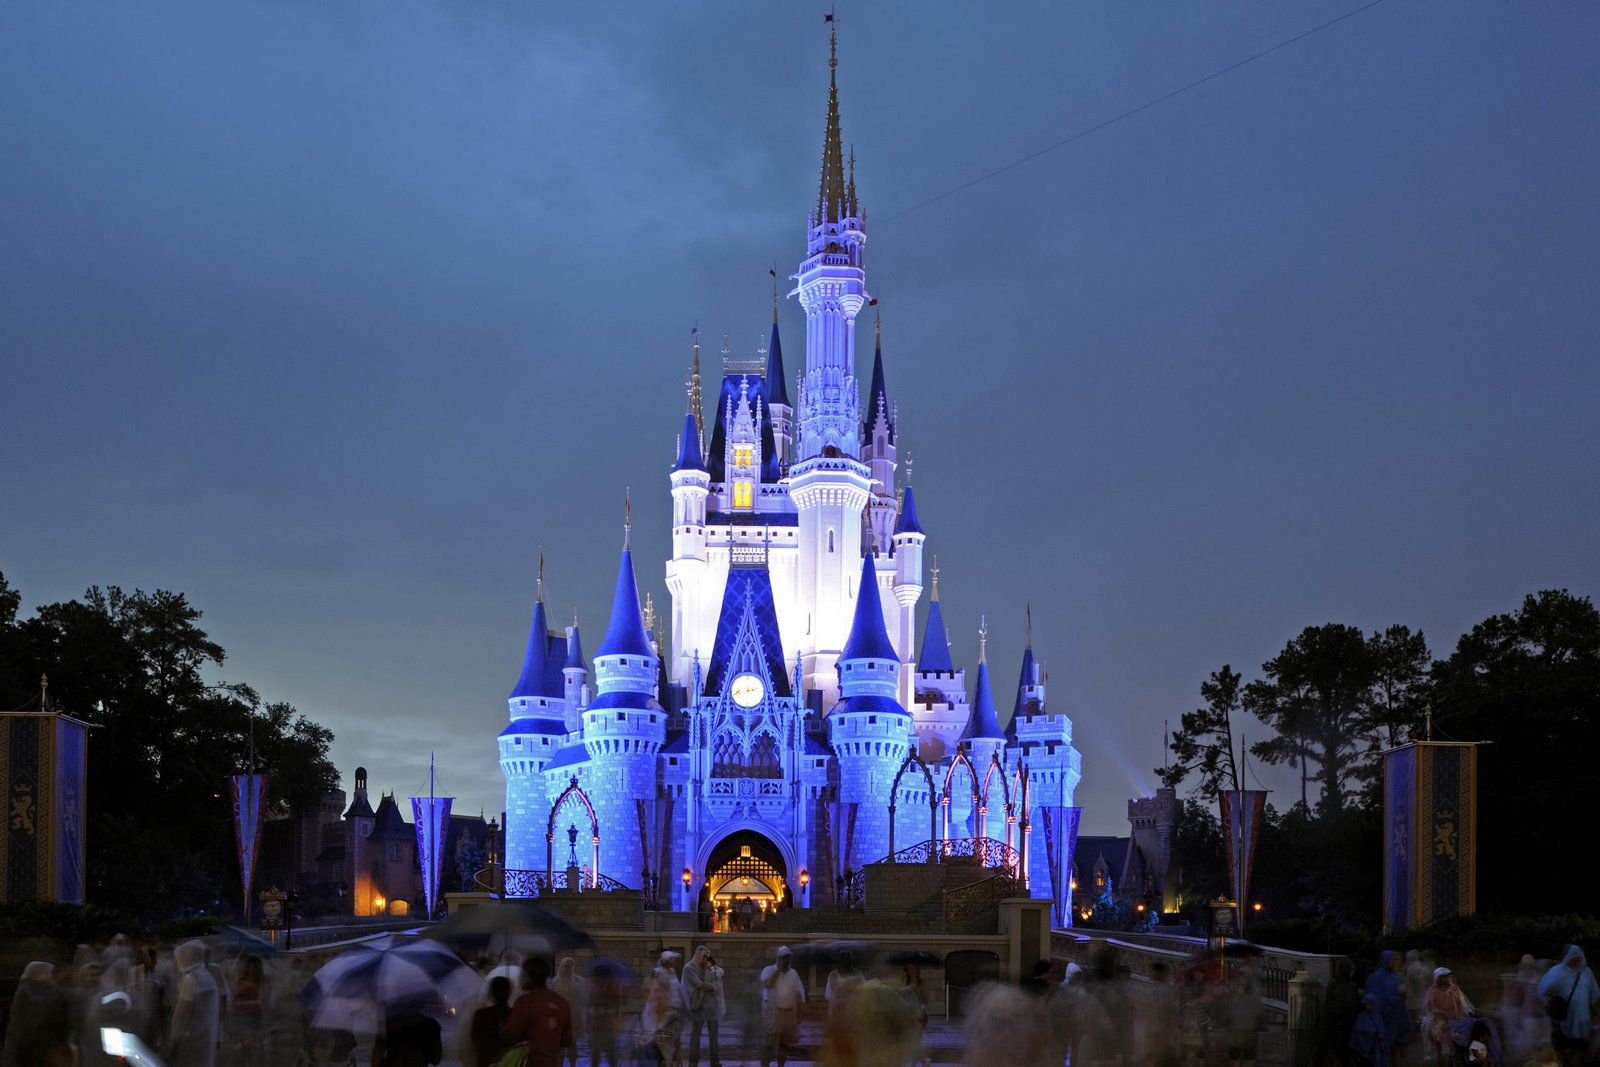 Disney Castle Wallpaper 1203 Hd Wallpapers in Cartoons   Imagescicom 1600x1067